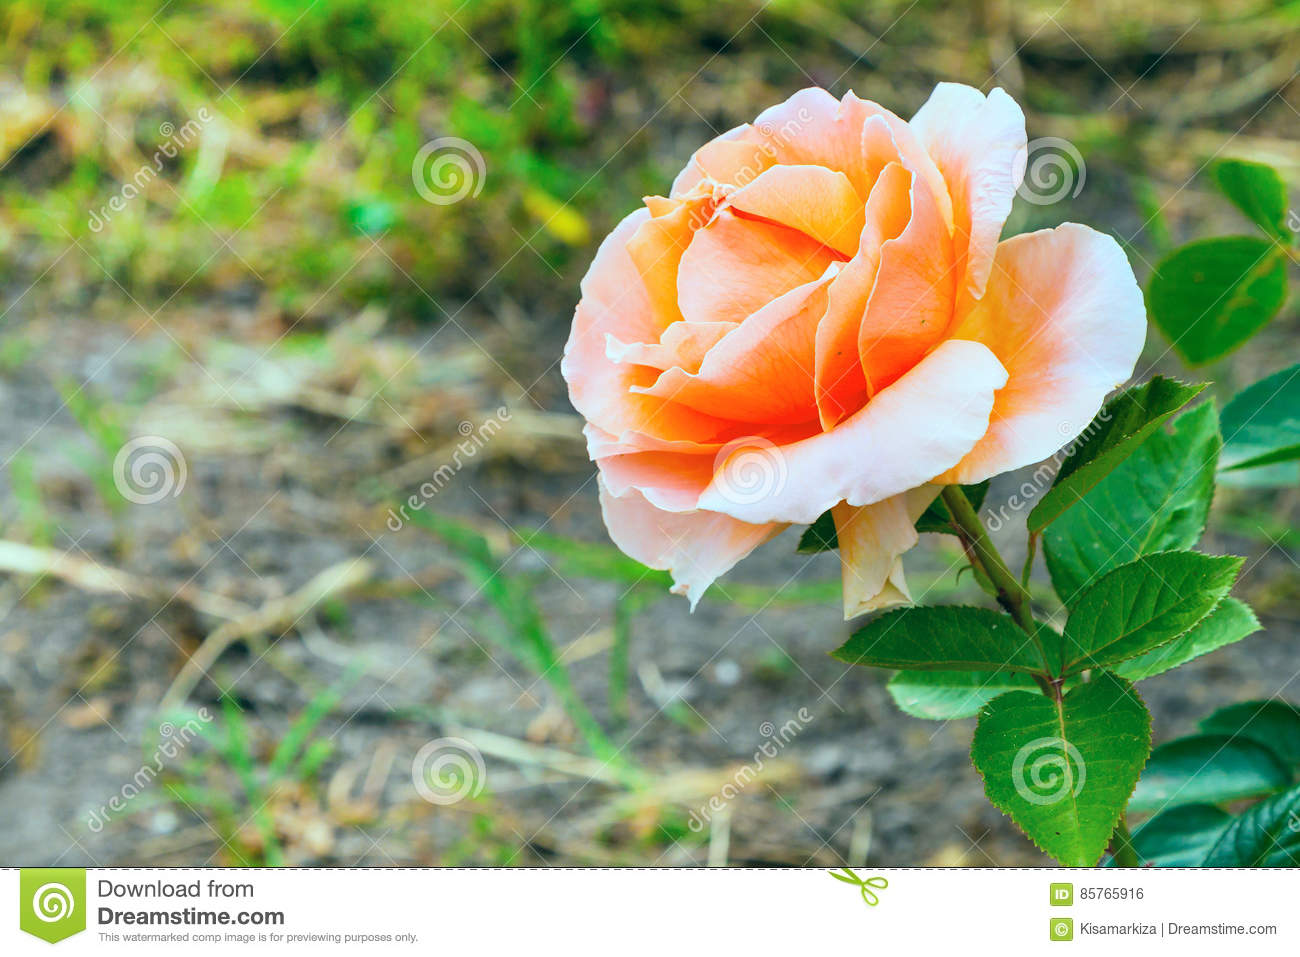 Close up beautiful rose flower happy birthday card stock photo download close up beautiful rose flower happy birthday card stock photo image of izmirmasajfo